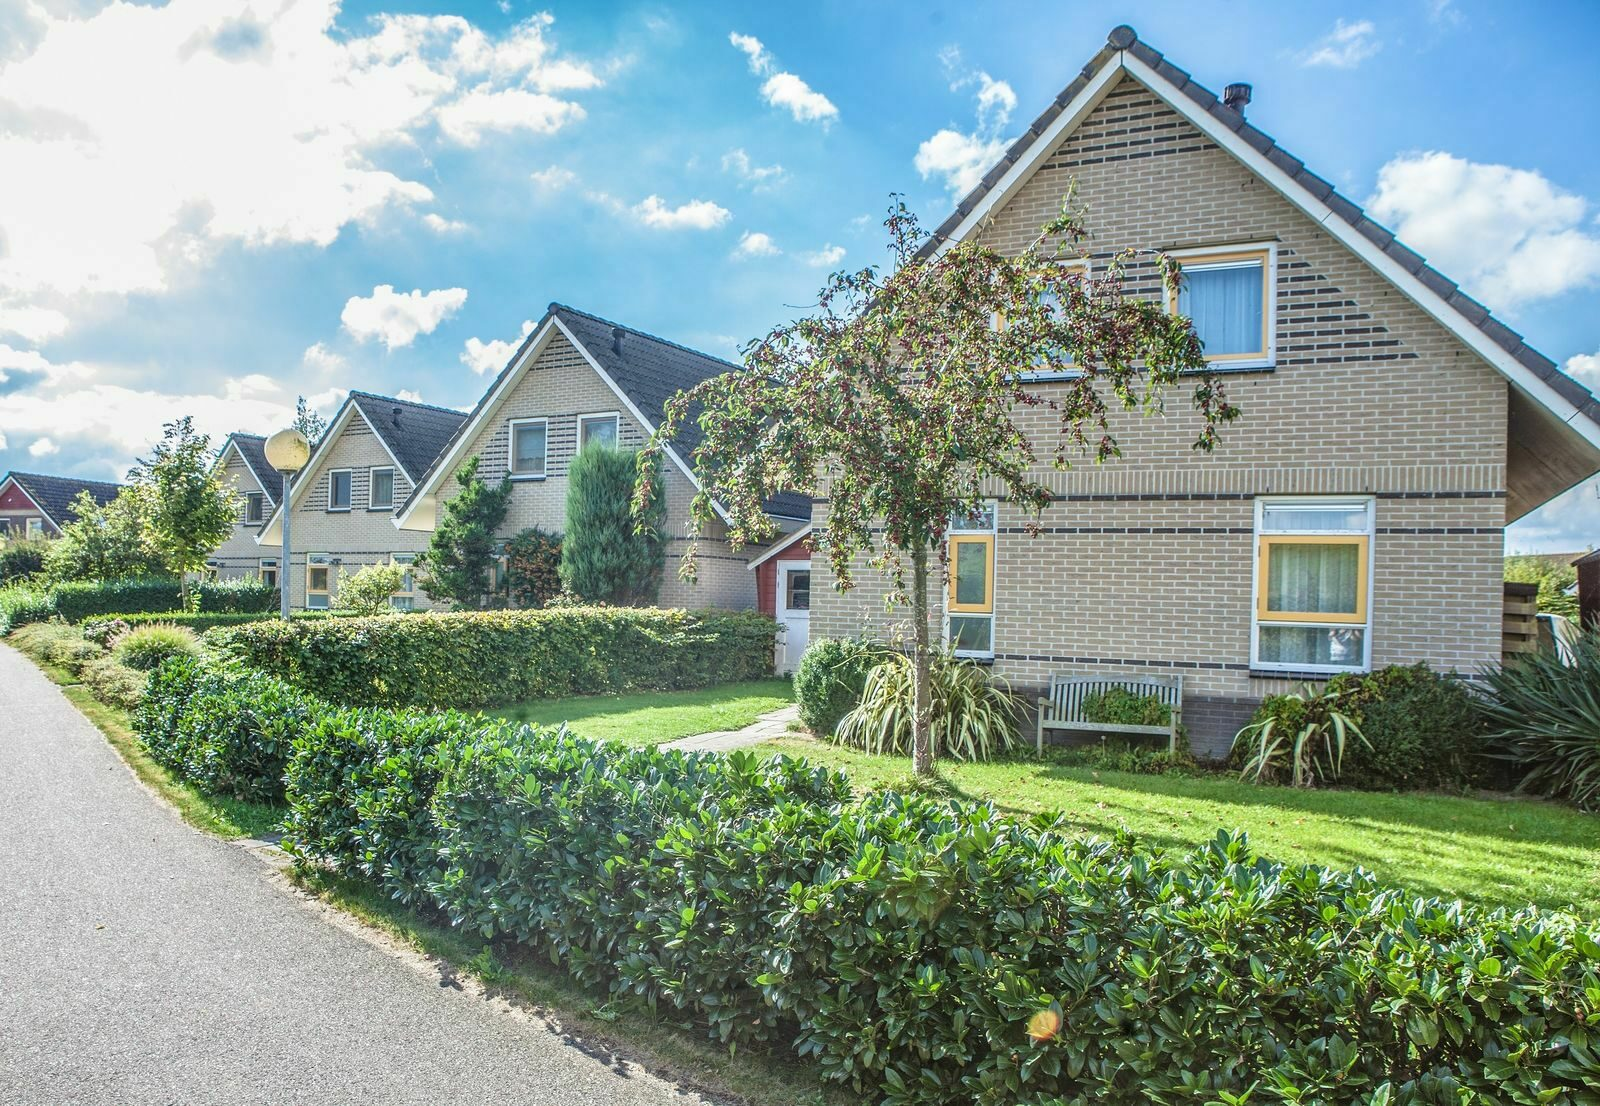 Overnight stay in North Holland